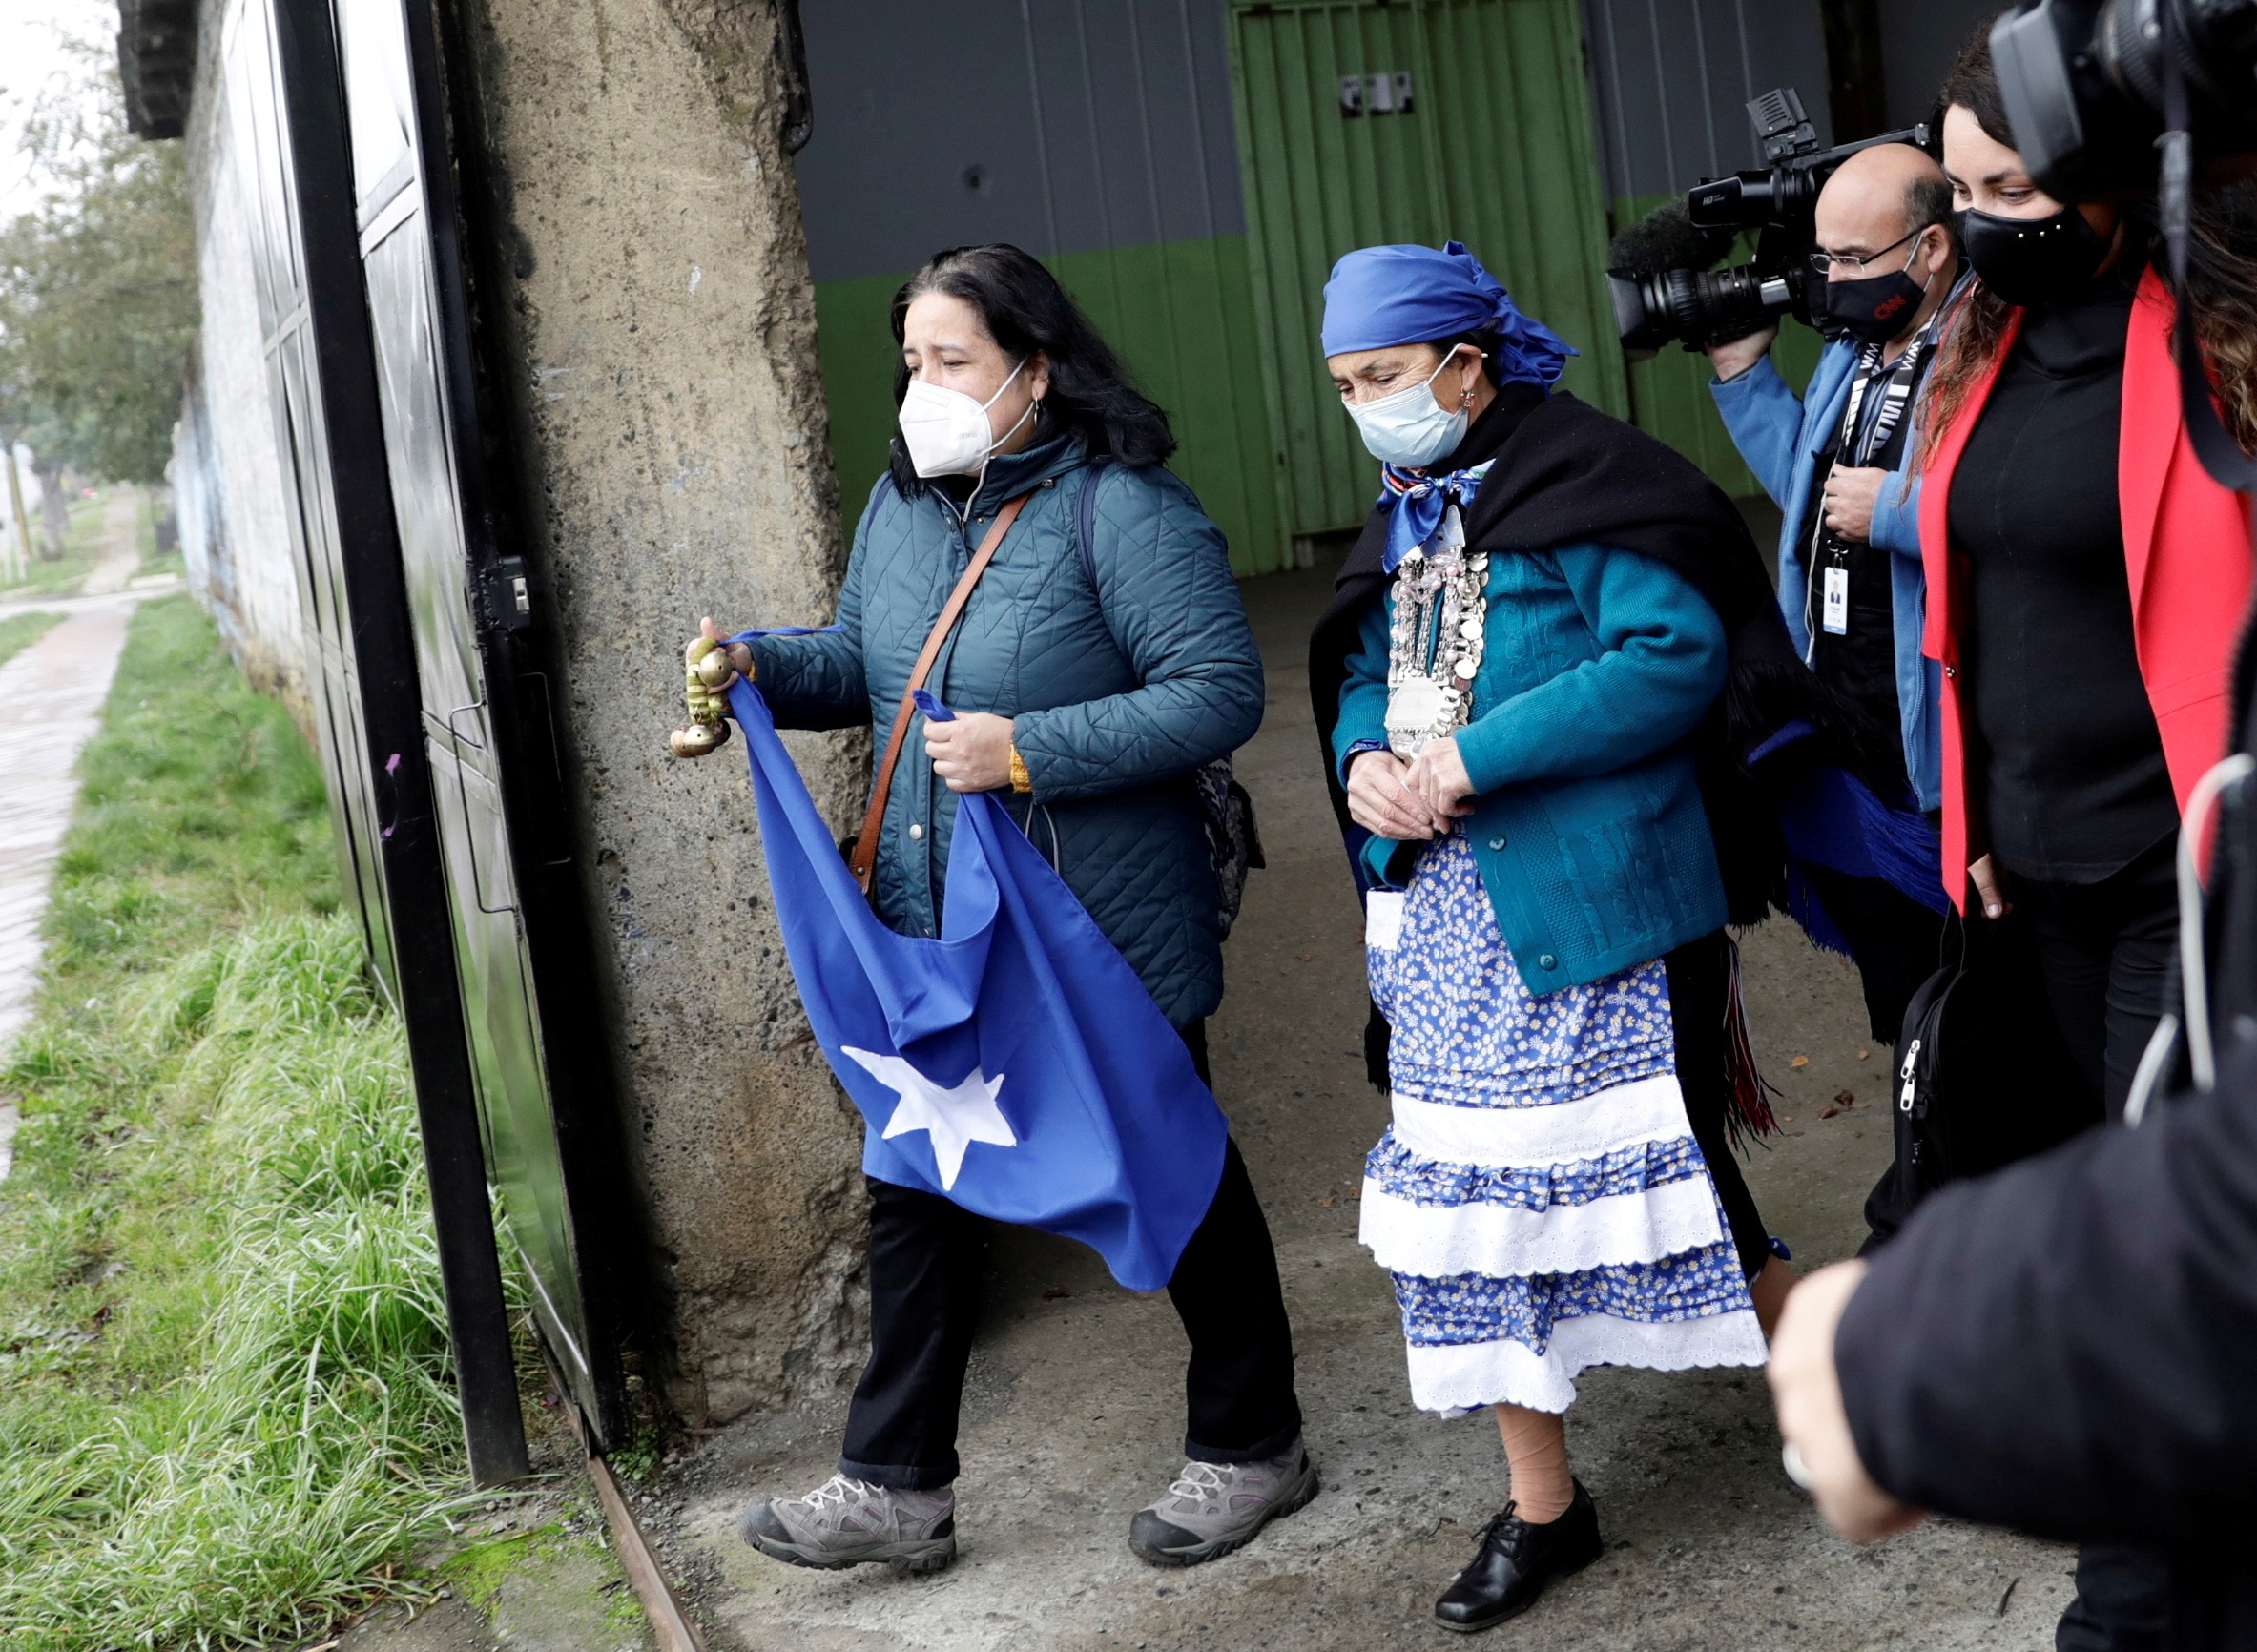 Mapuche spiritual authority and constituent candidate Francisca Linconao leaves after casting her vote in the election for governors, mayors, councillors and constitutional assembly members to draft a new constitution to replace Chile's charter, in Temuco, Chile May 16, 2021. REUTERS/Juan Gonzalez/File Photo